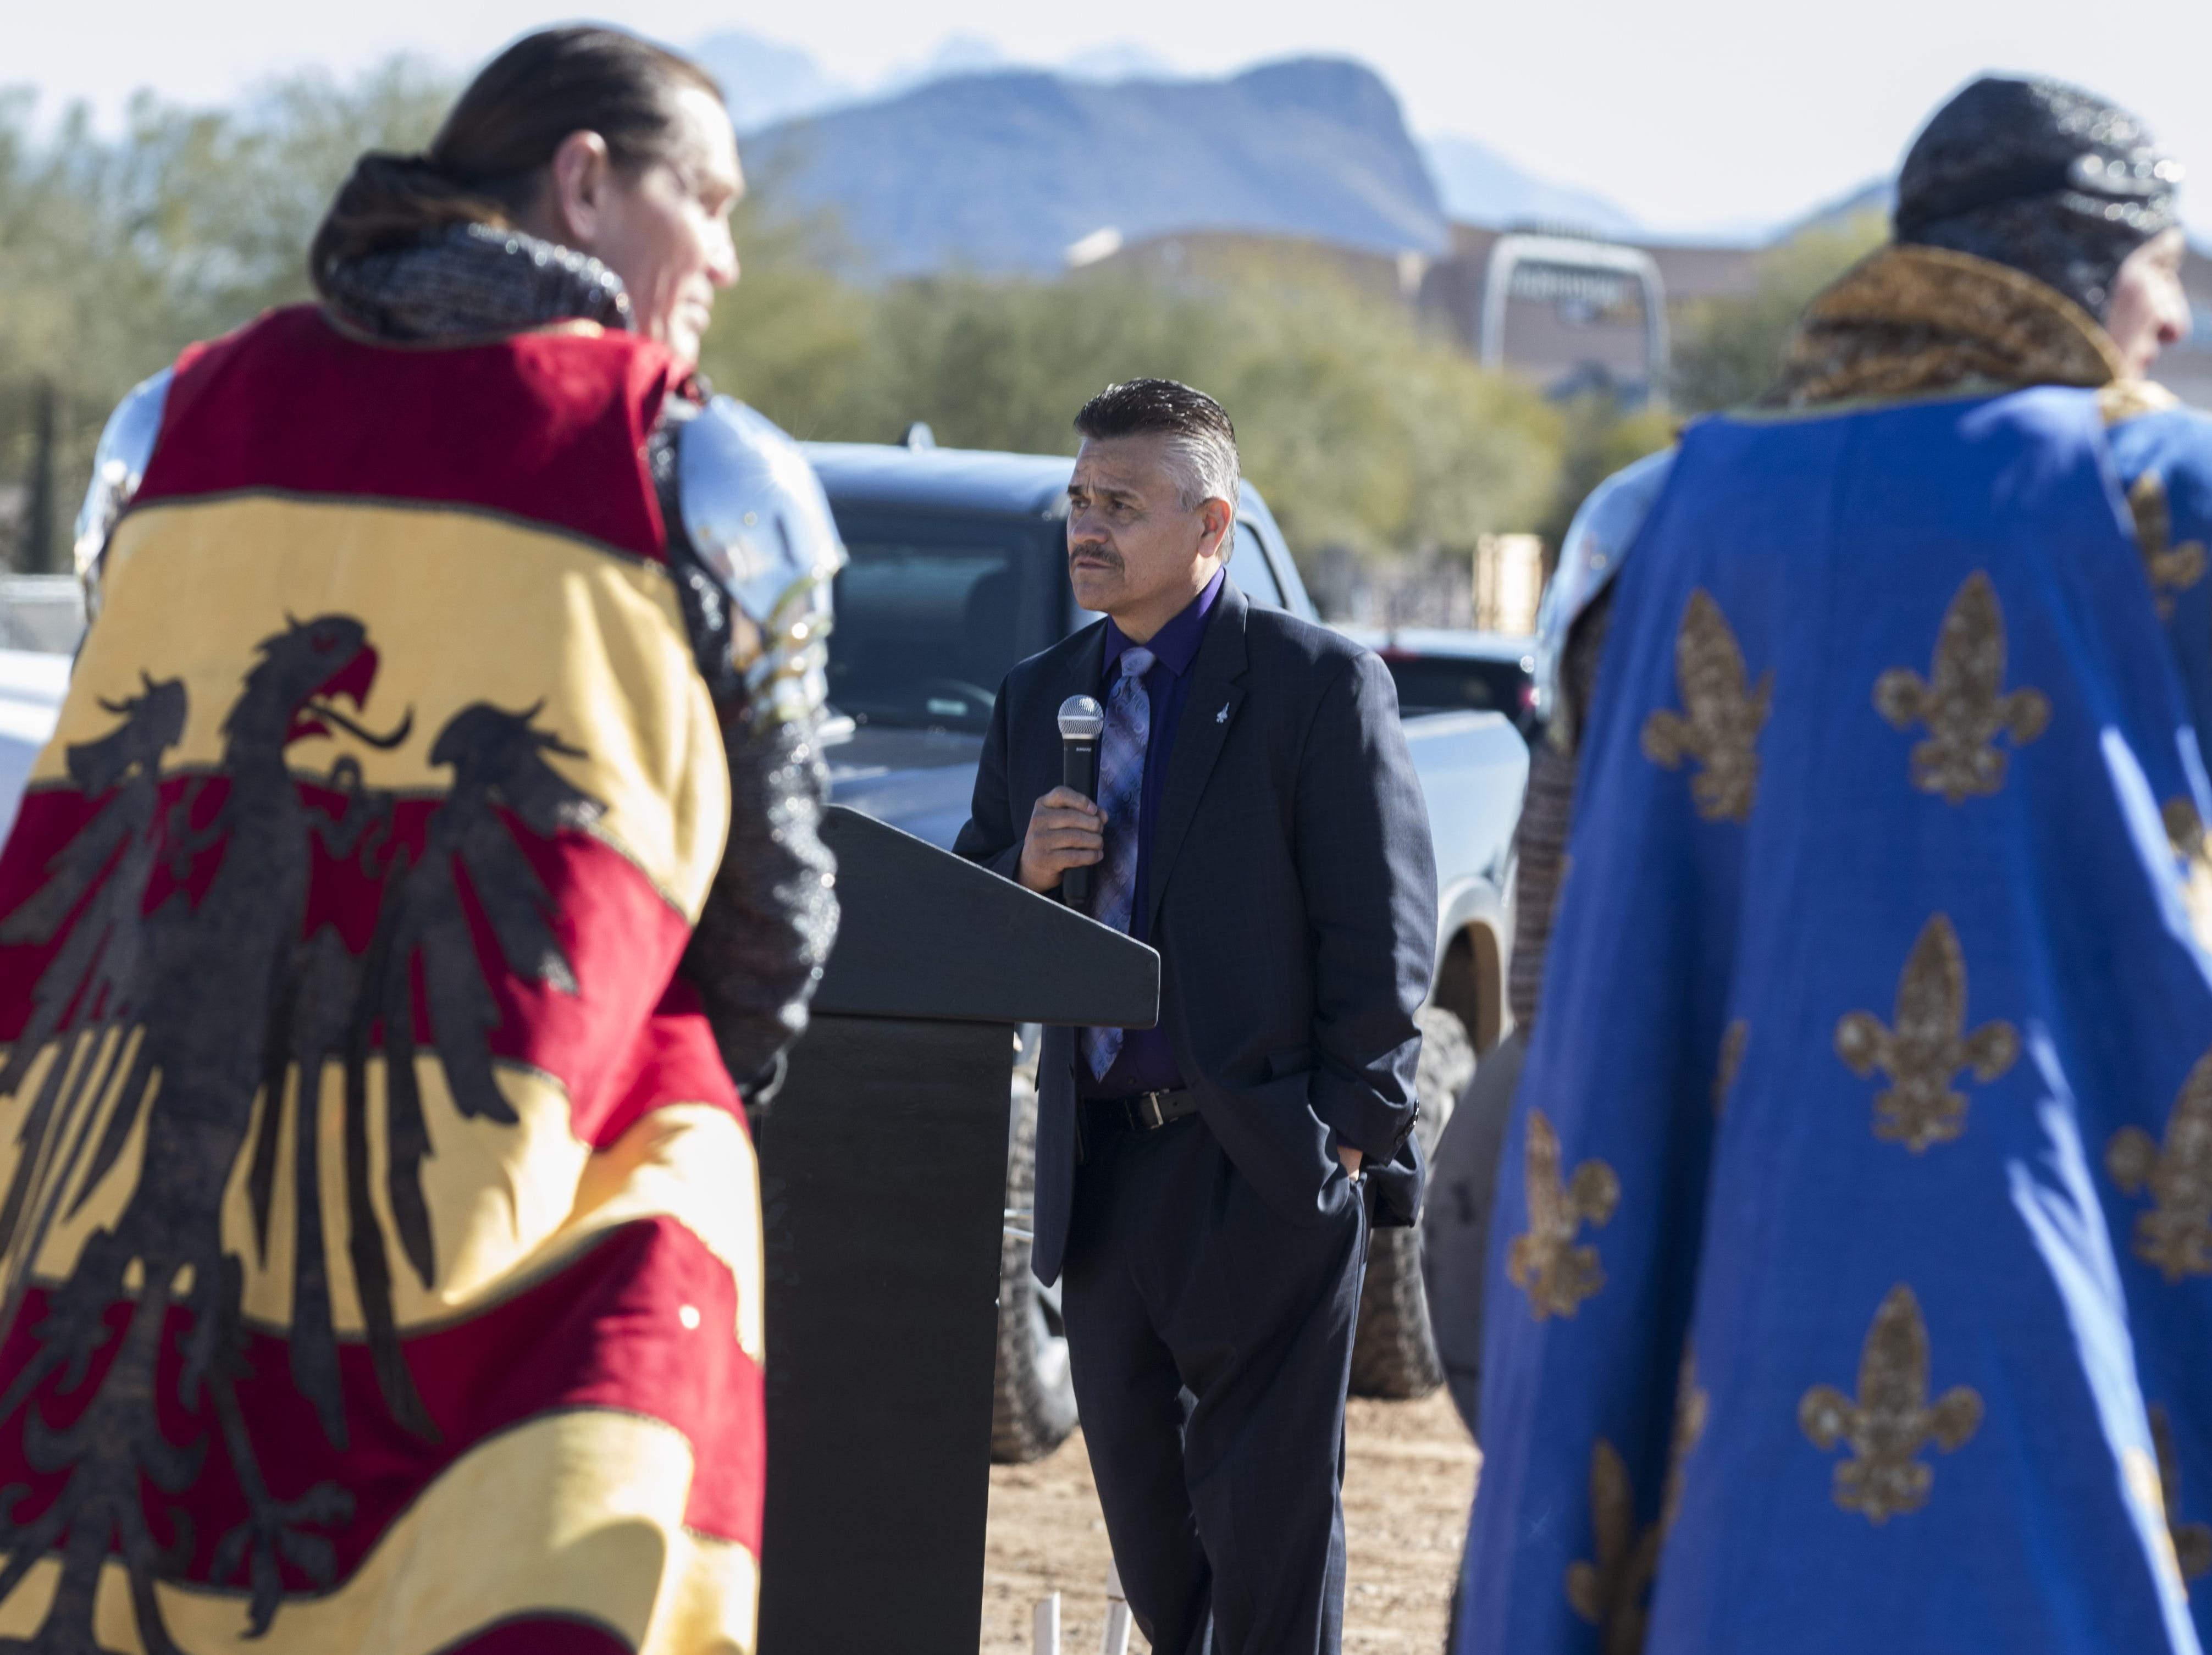 Salt River Pima-Maricopa Indian Community President Martin Harvier addresses a crowd on hand to watch the final piece of steel being placed on the Medieval Times castle coming to the Talking Stick Entertainment District in Scottsdale, Feb, 20, 2019.